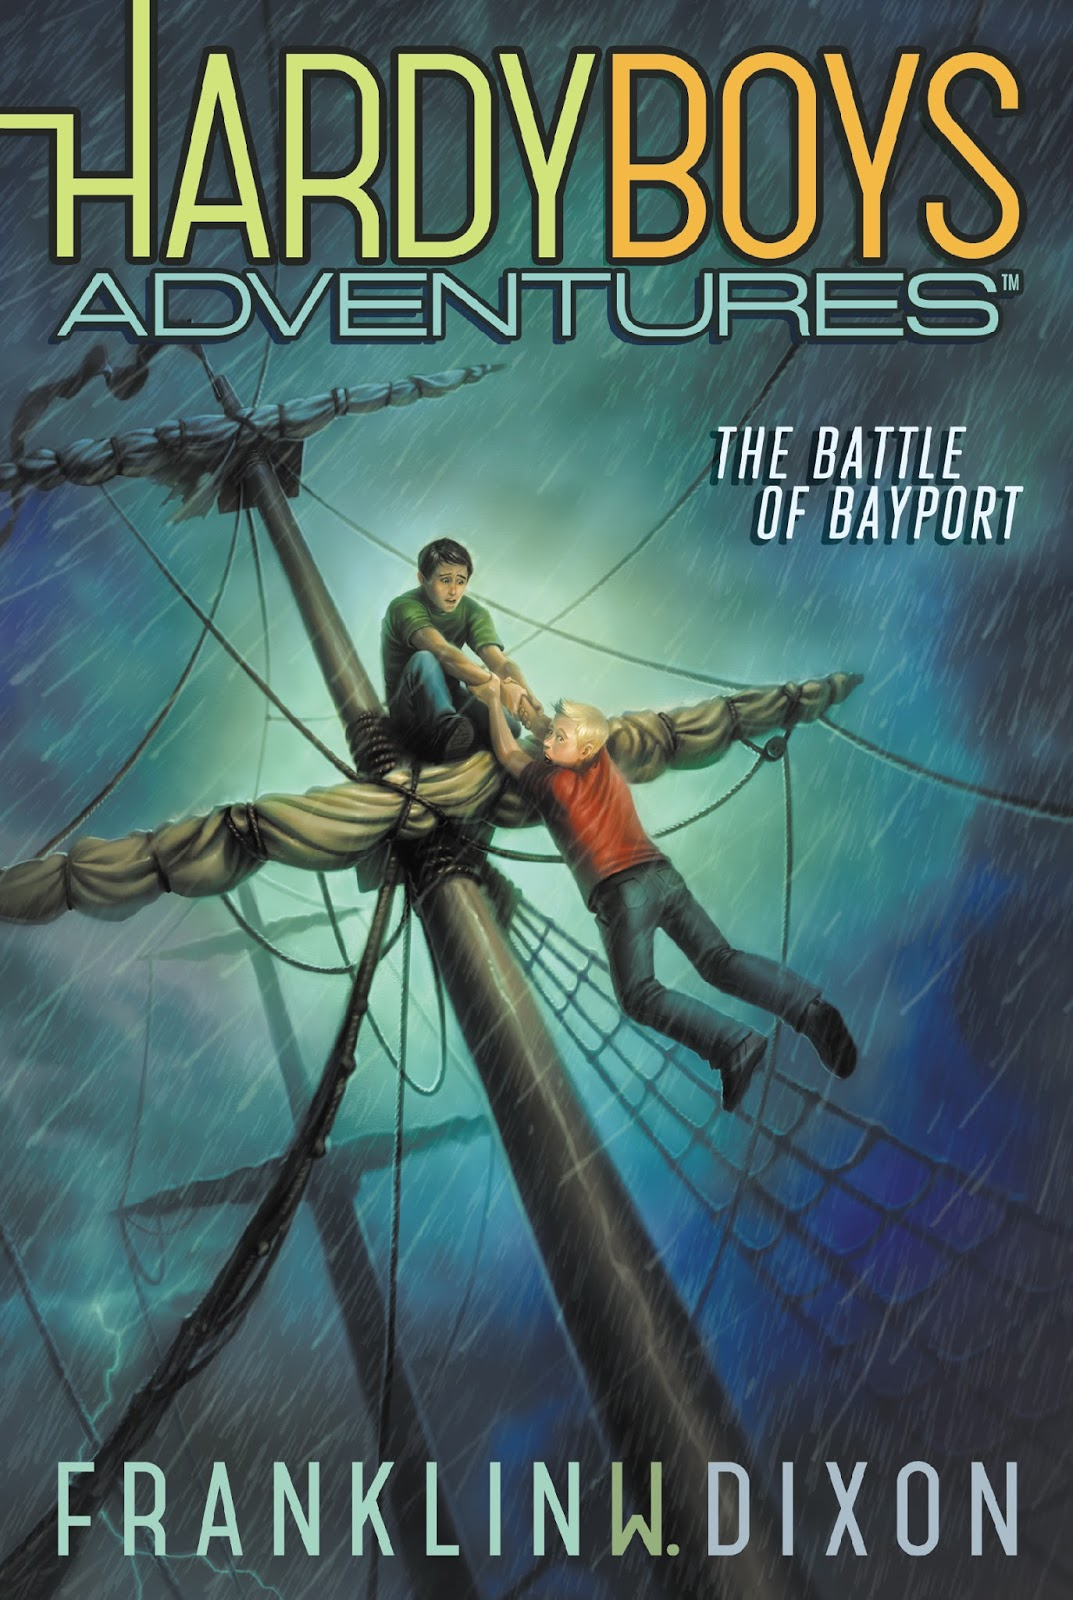 Important Quotes From Into Thin Air With Page Numbers: Series Books For Girls: Hardy Boys Adventures #5 Peril At